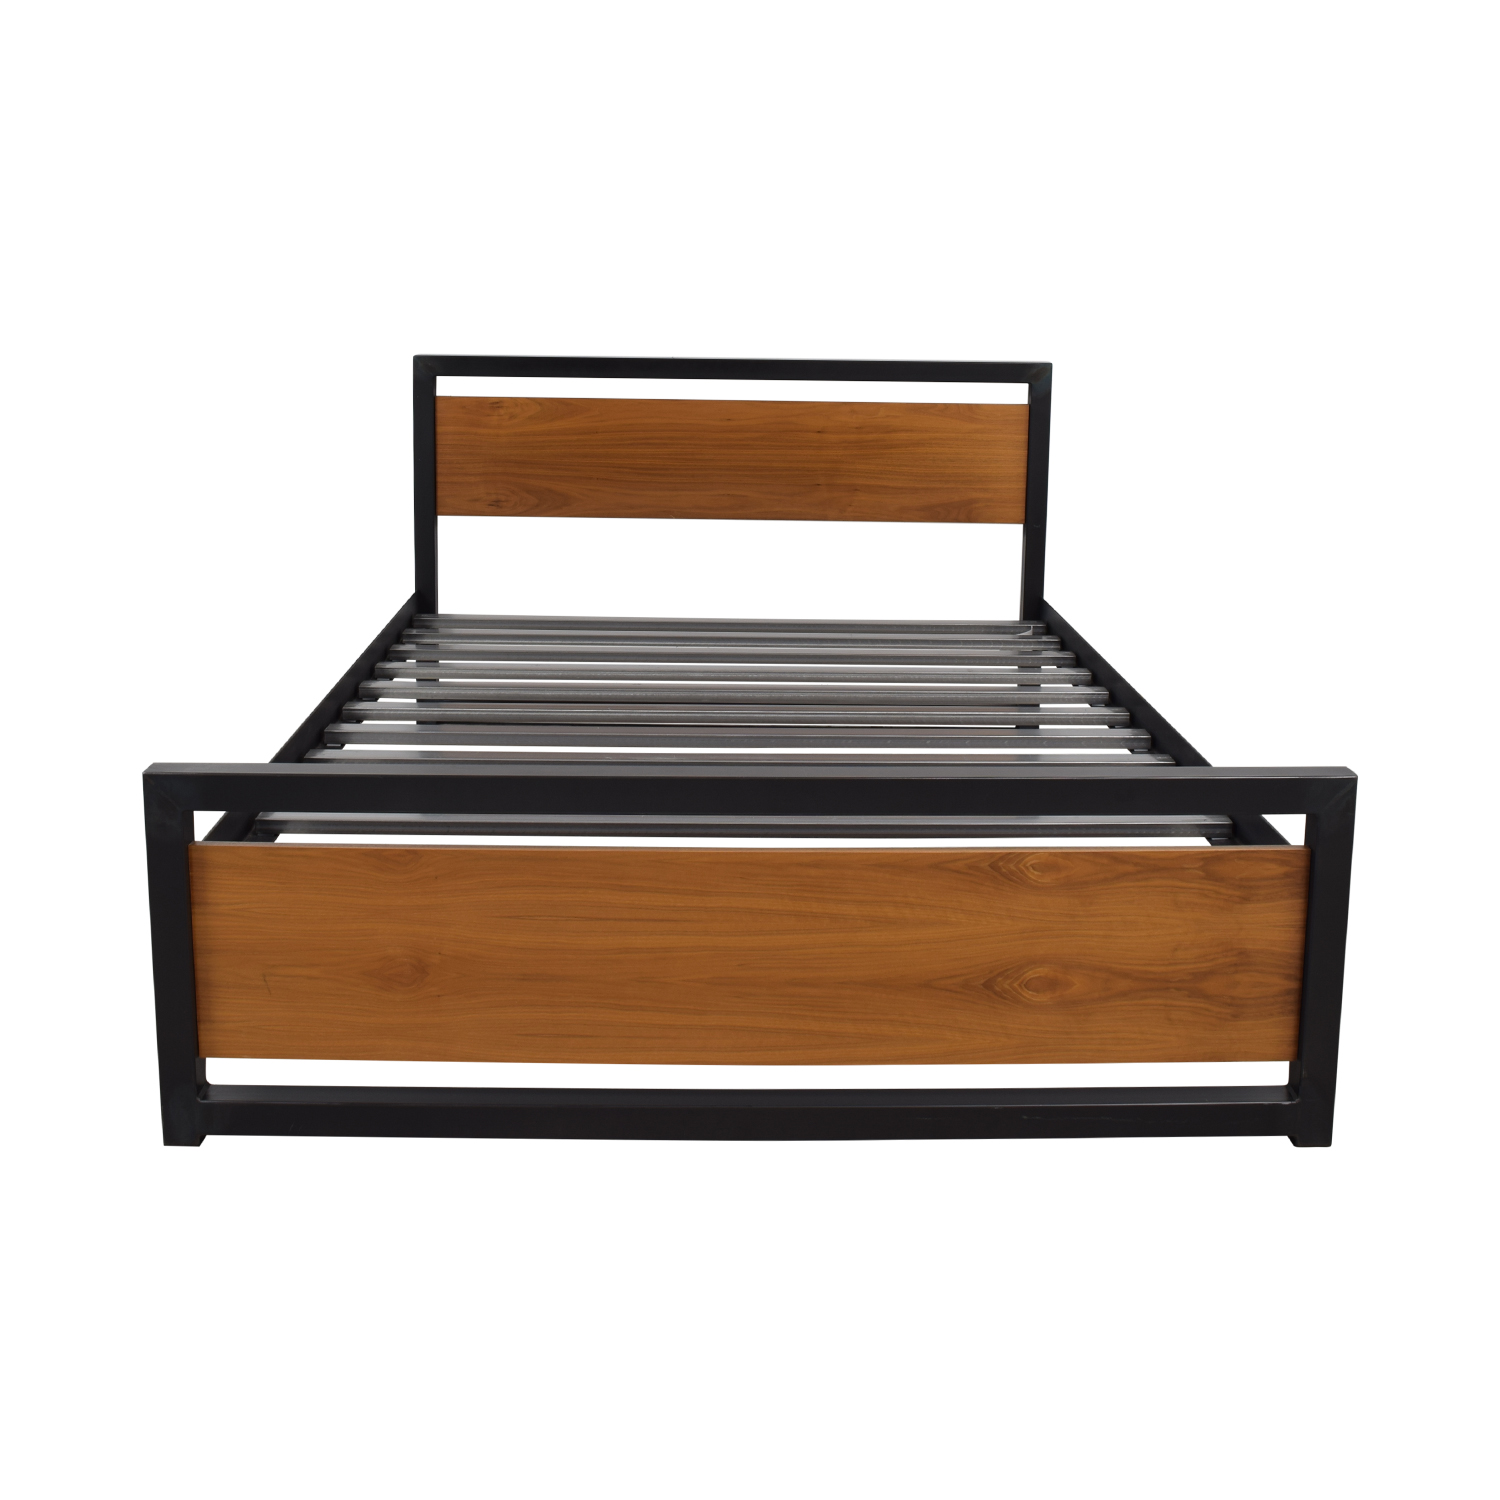 Room & Board Room & Board Piper Natural Steel Wood Panel Queen Bed Frame second hand